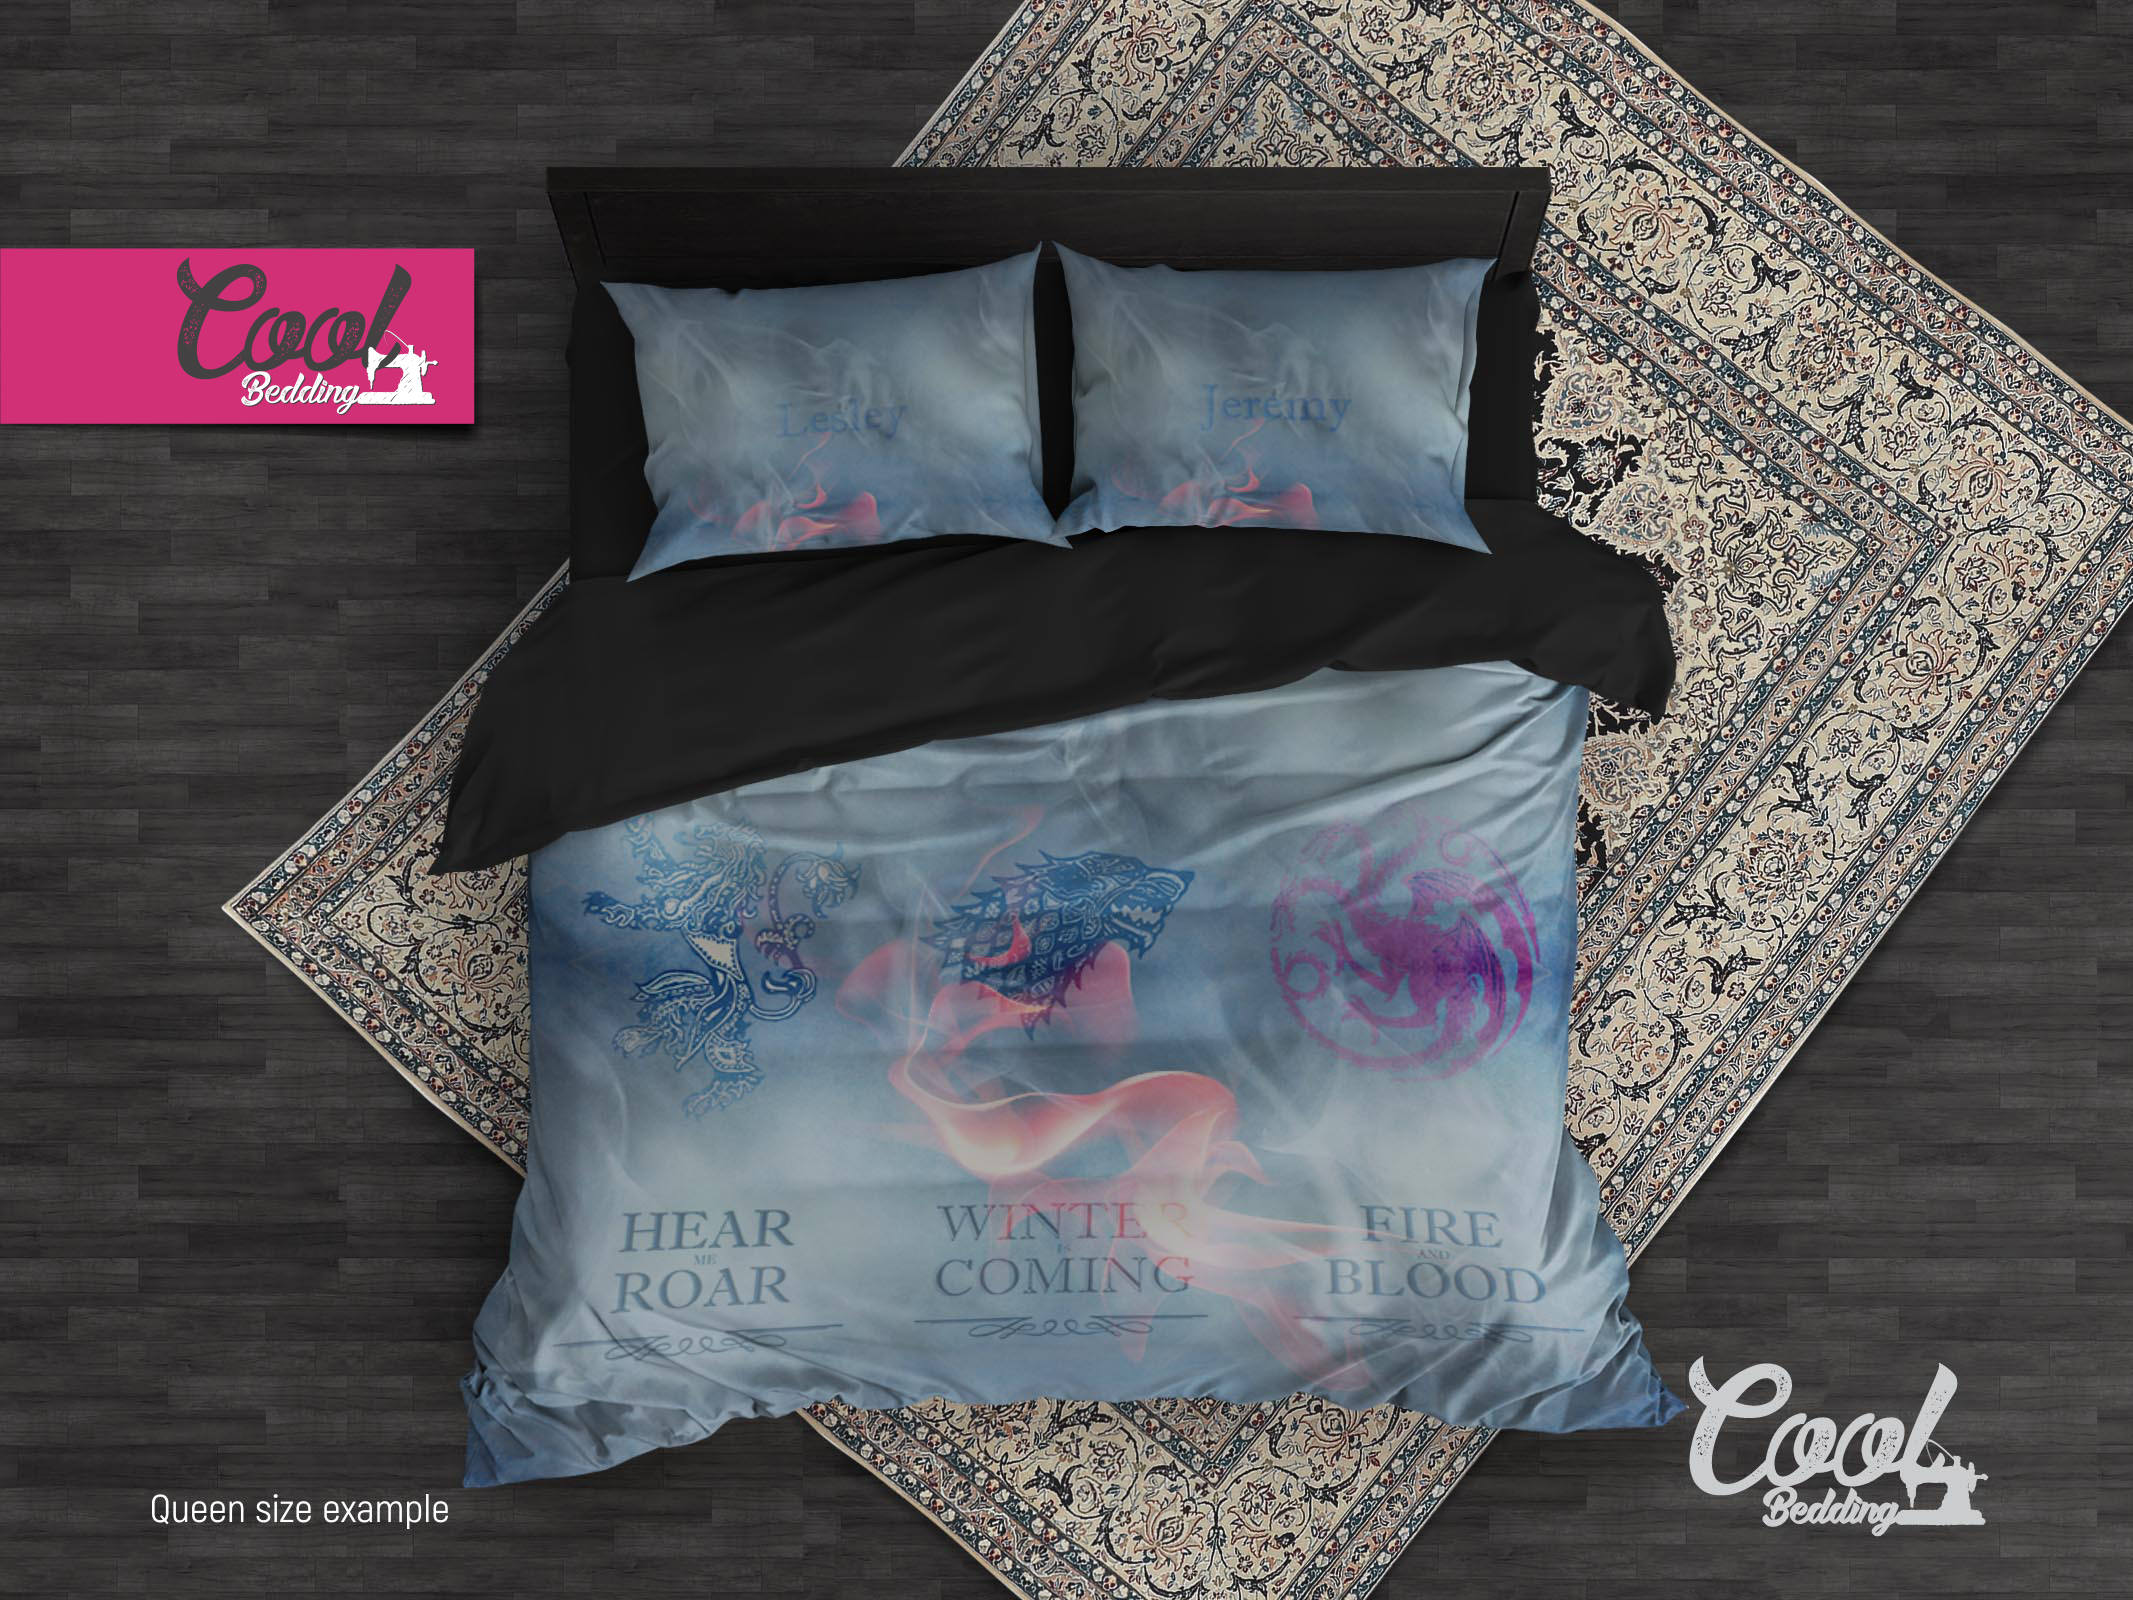 Game Of Thrones Bettwäsche Personalized Duvet Cover Game Of Thrones Got Bedding Set Game Of Thrones Ispired Bedding Comforter Set 56